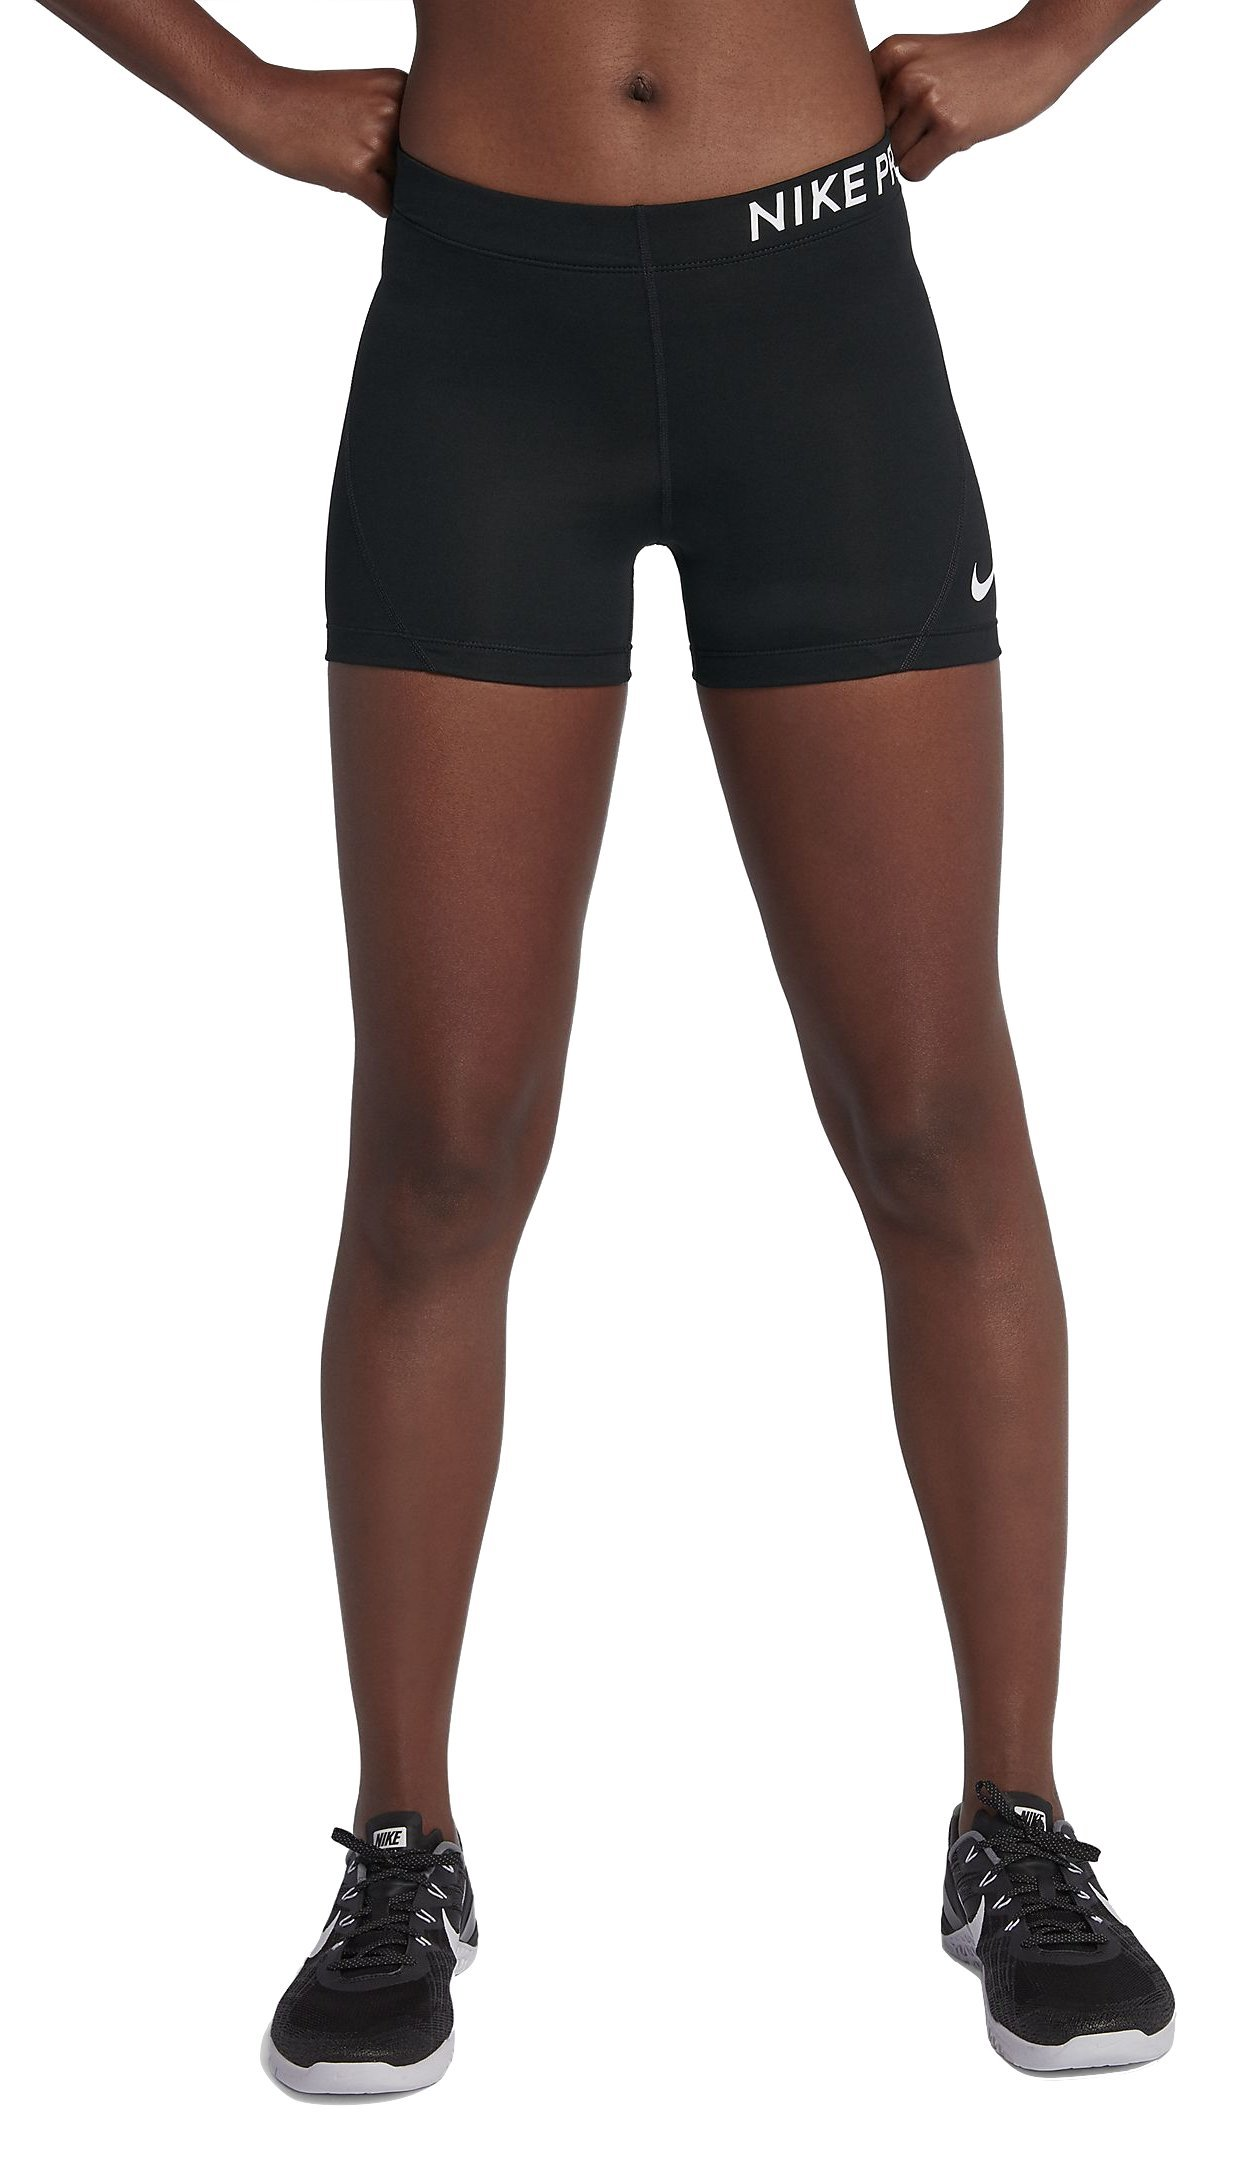 NIKE Womens Pro Compression 3'' Short Black/White S 589364-010-S by Nike (Image #1)